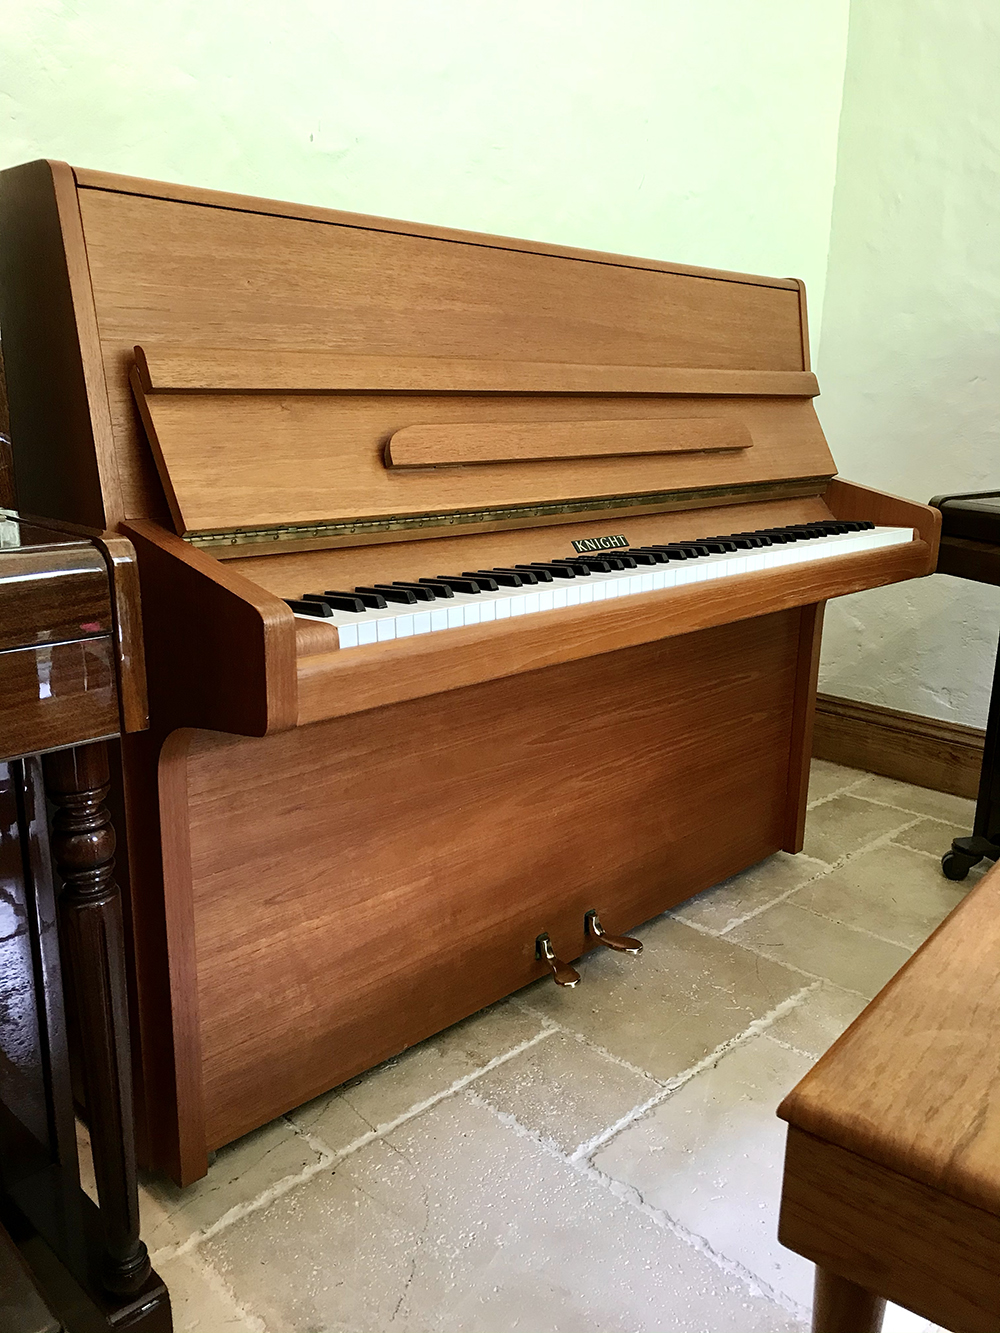 knight-k10-used-upright-Piano-Dorset-for-sale-6.jpg